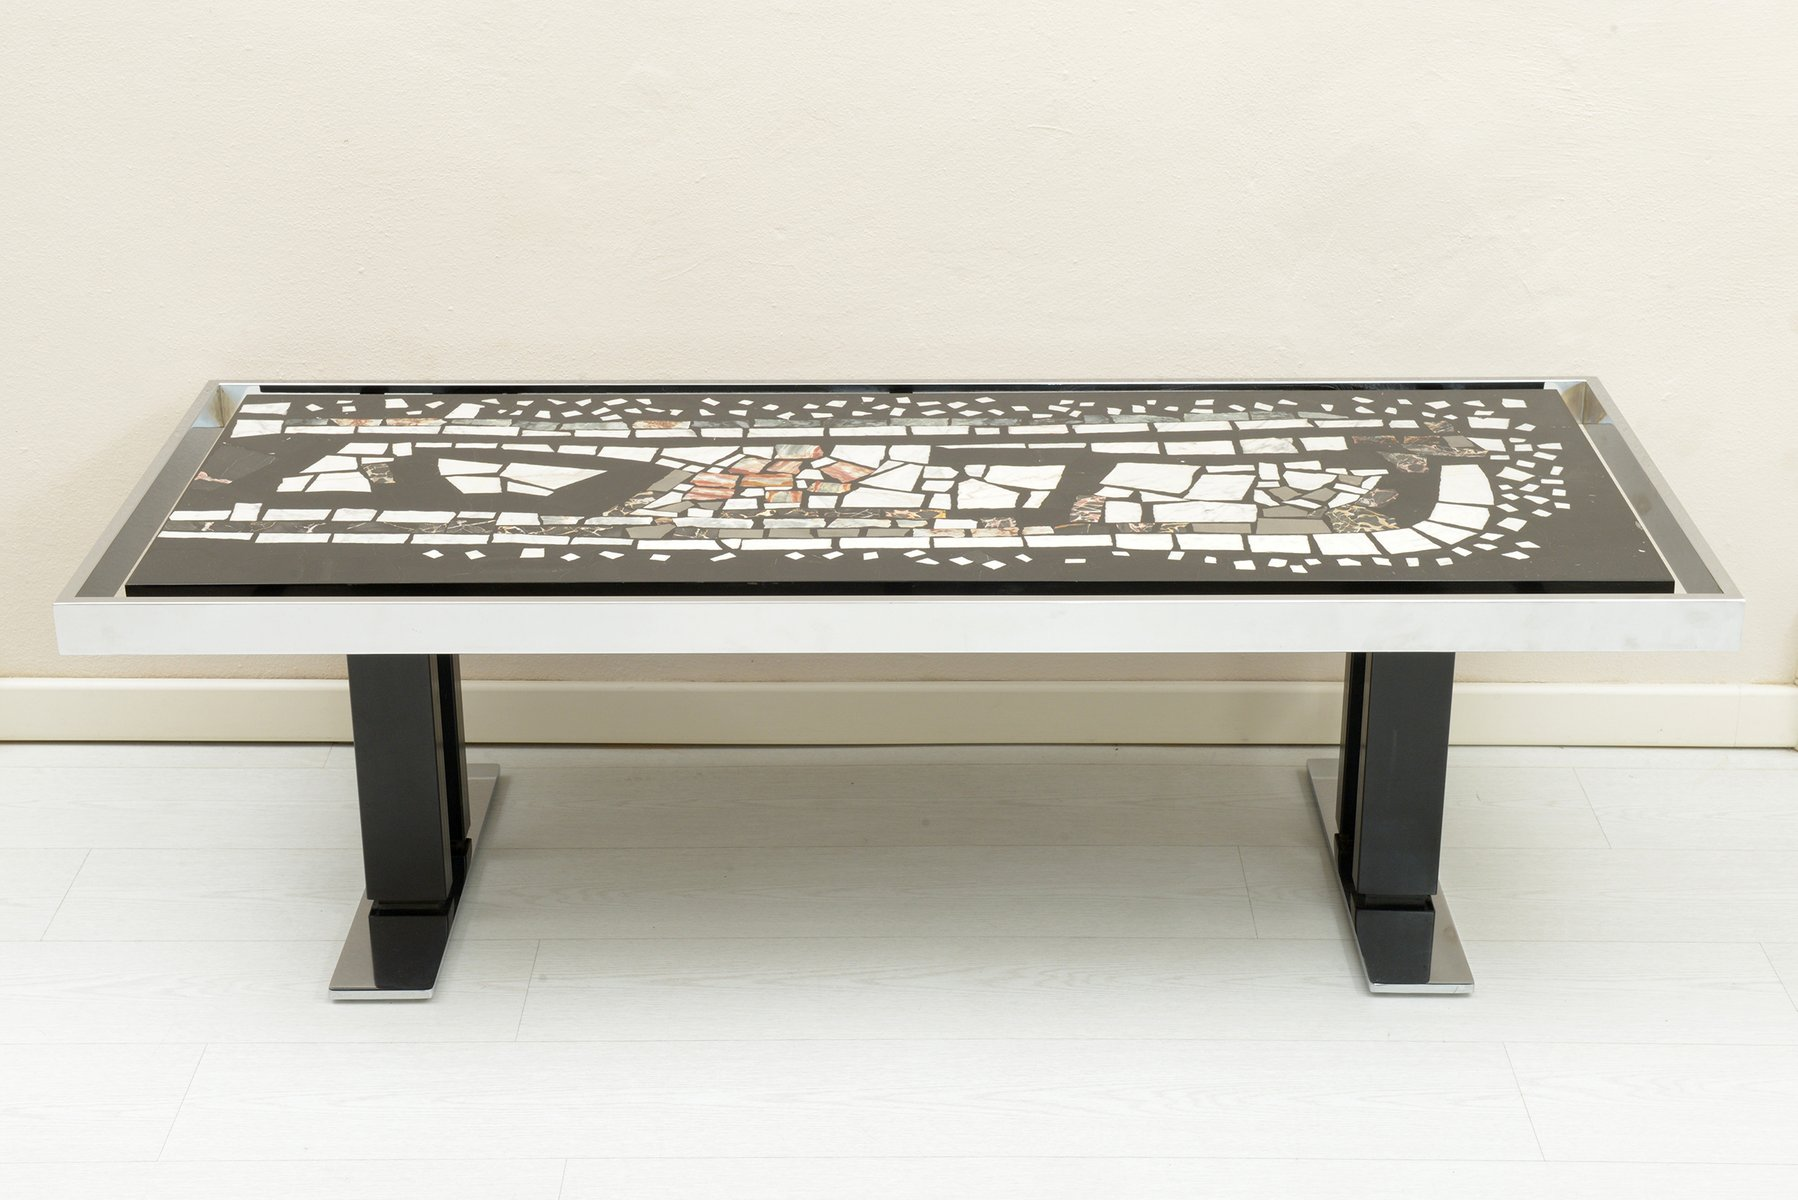 mosaique table basse free mosaique table basse with mosaique table basse table bois fossile. Black Bedroom Furniture Sets. Home Design Ideas